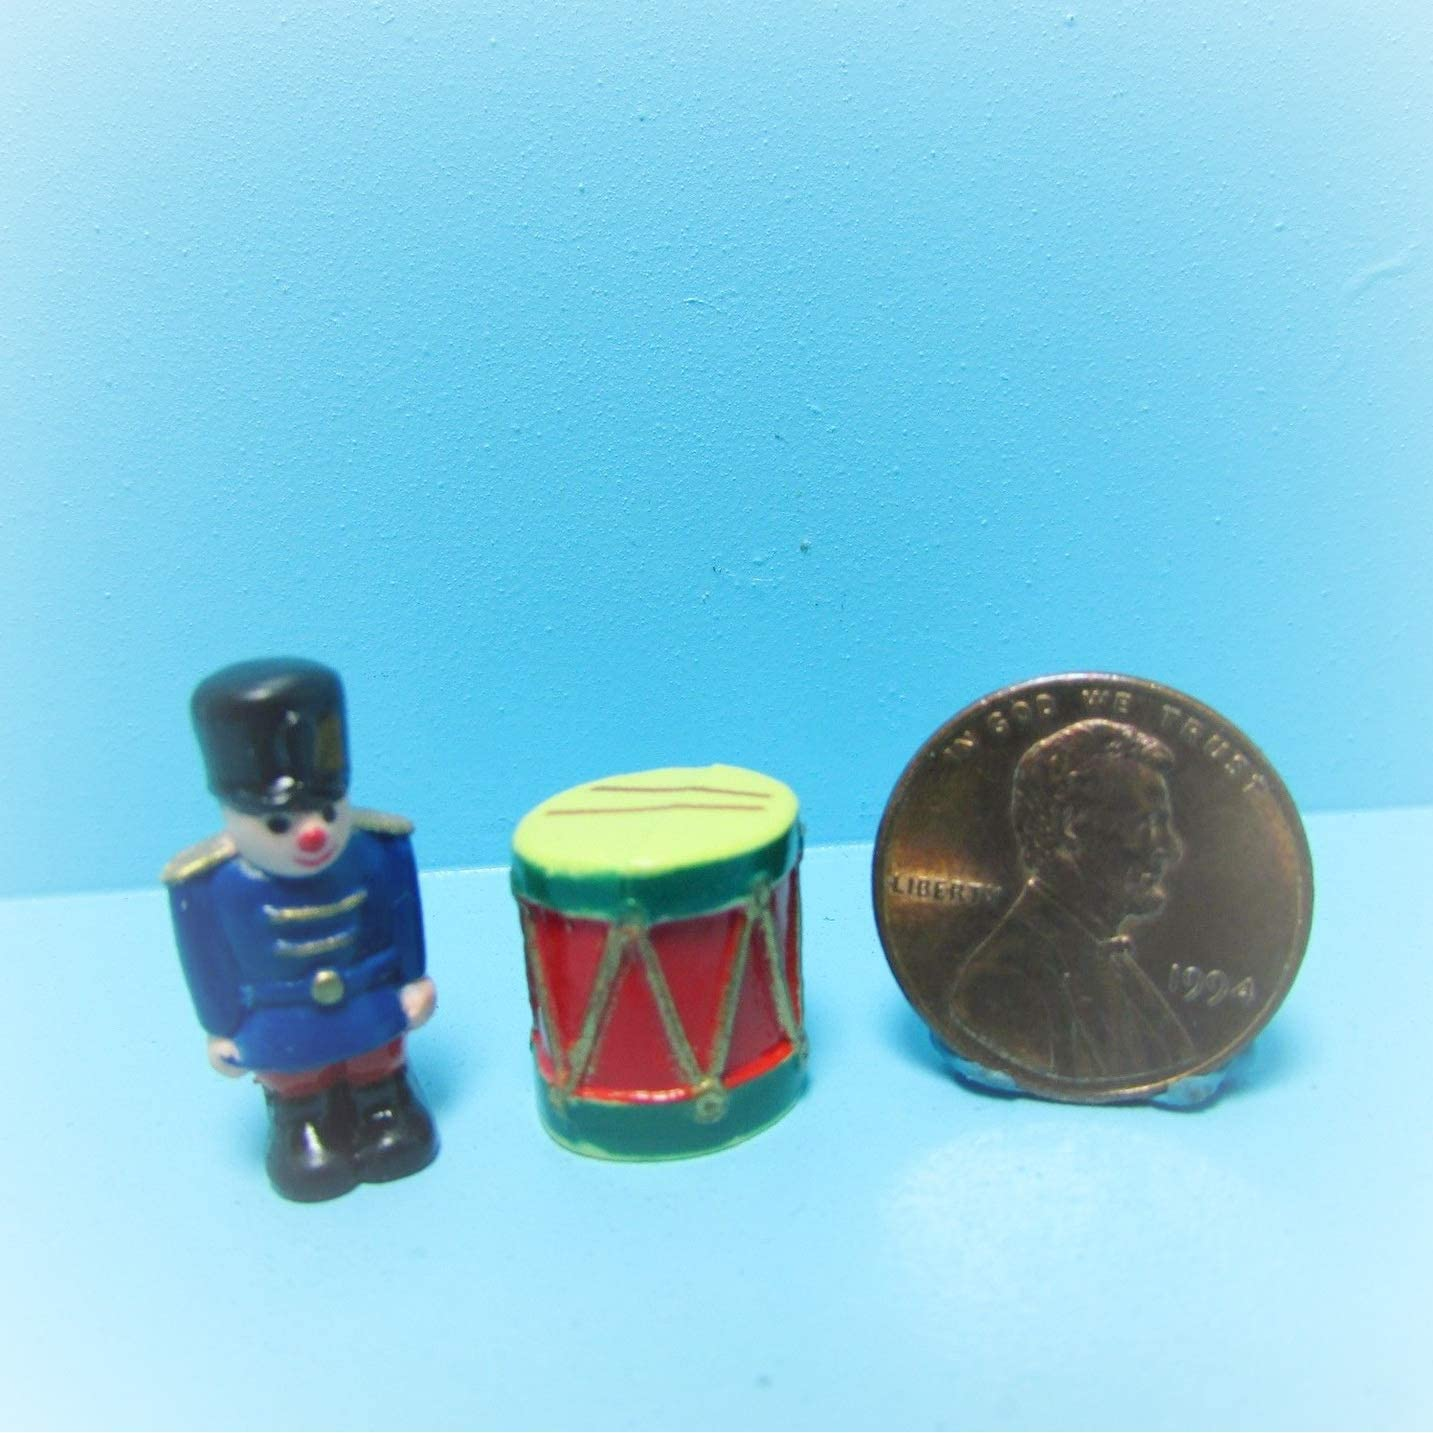 Dollhouse Miniature Toy Soldier with a White Drum